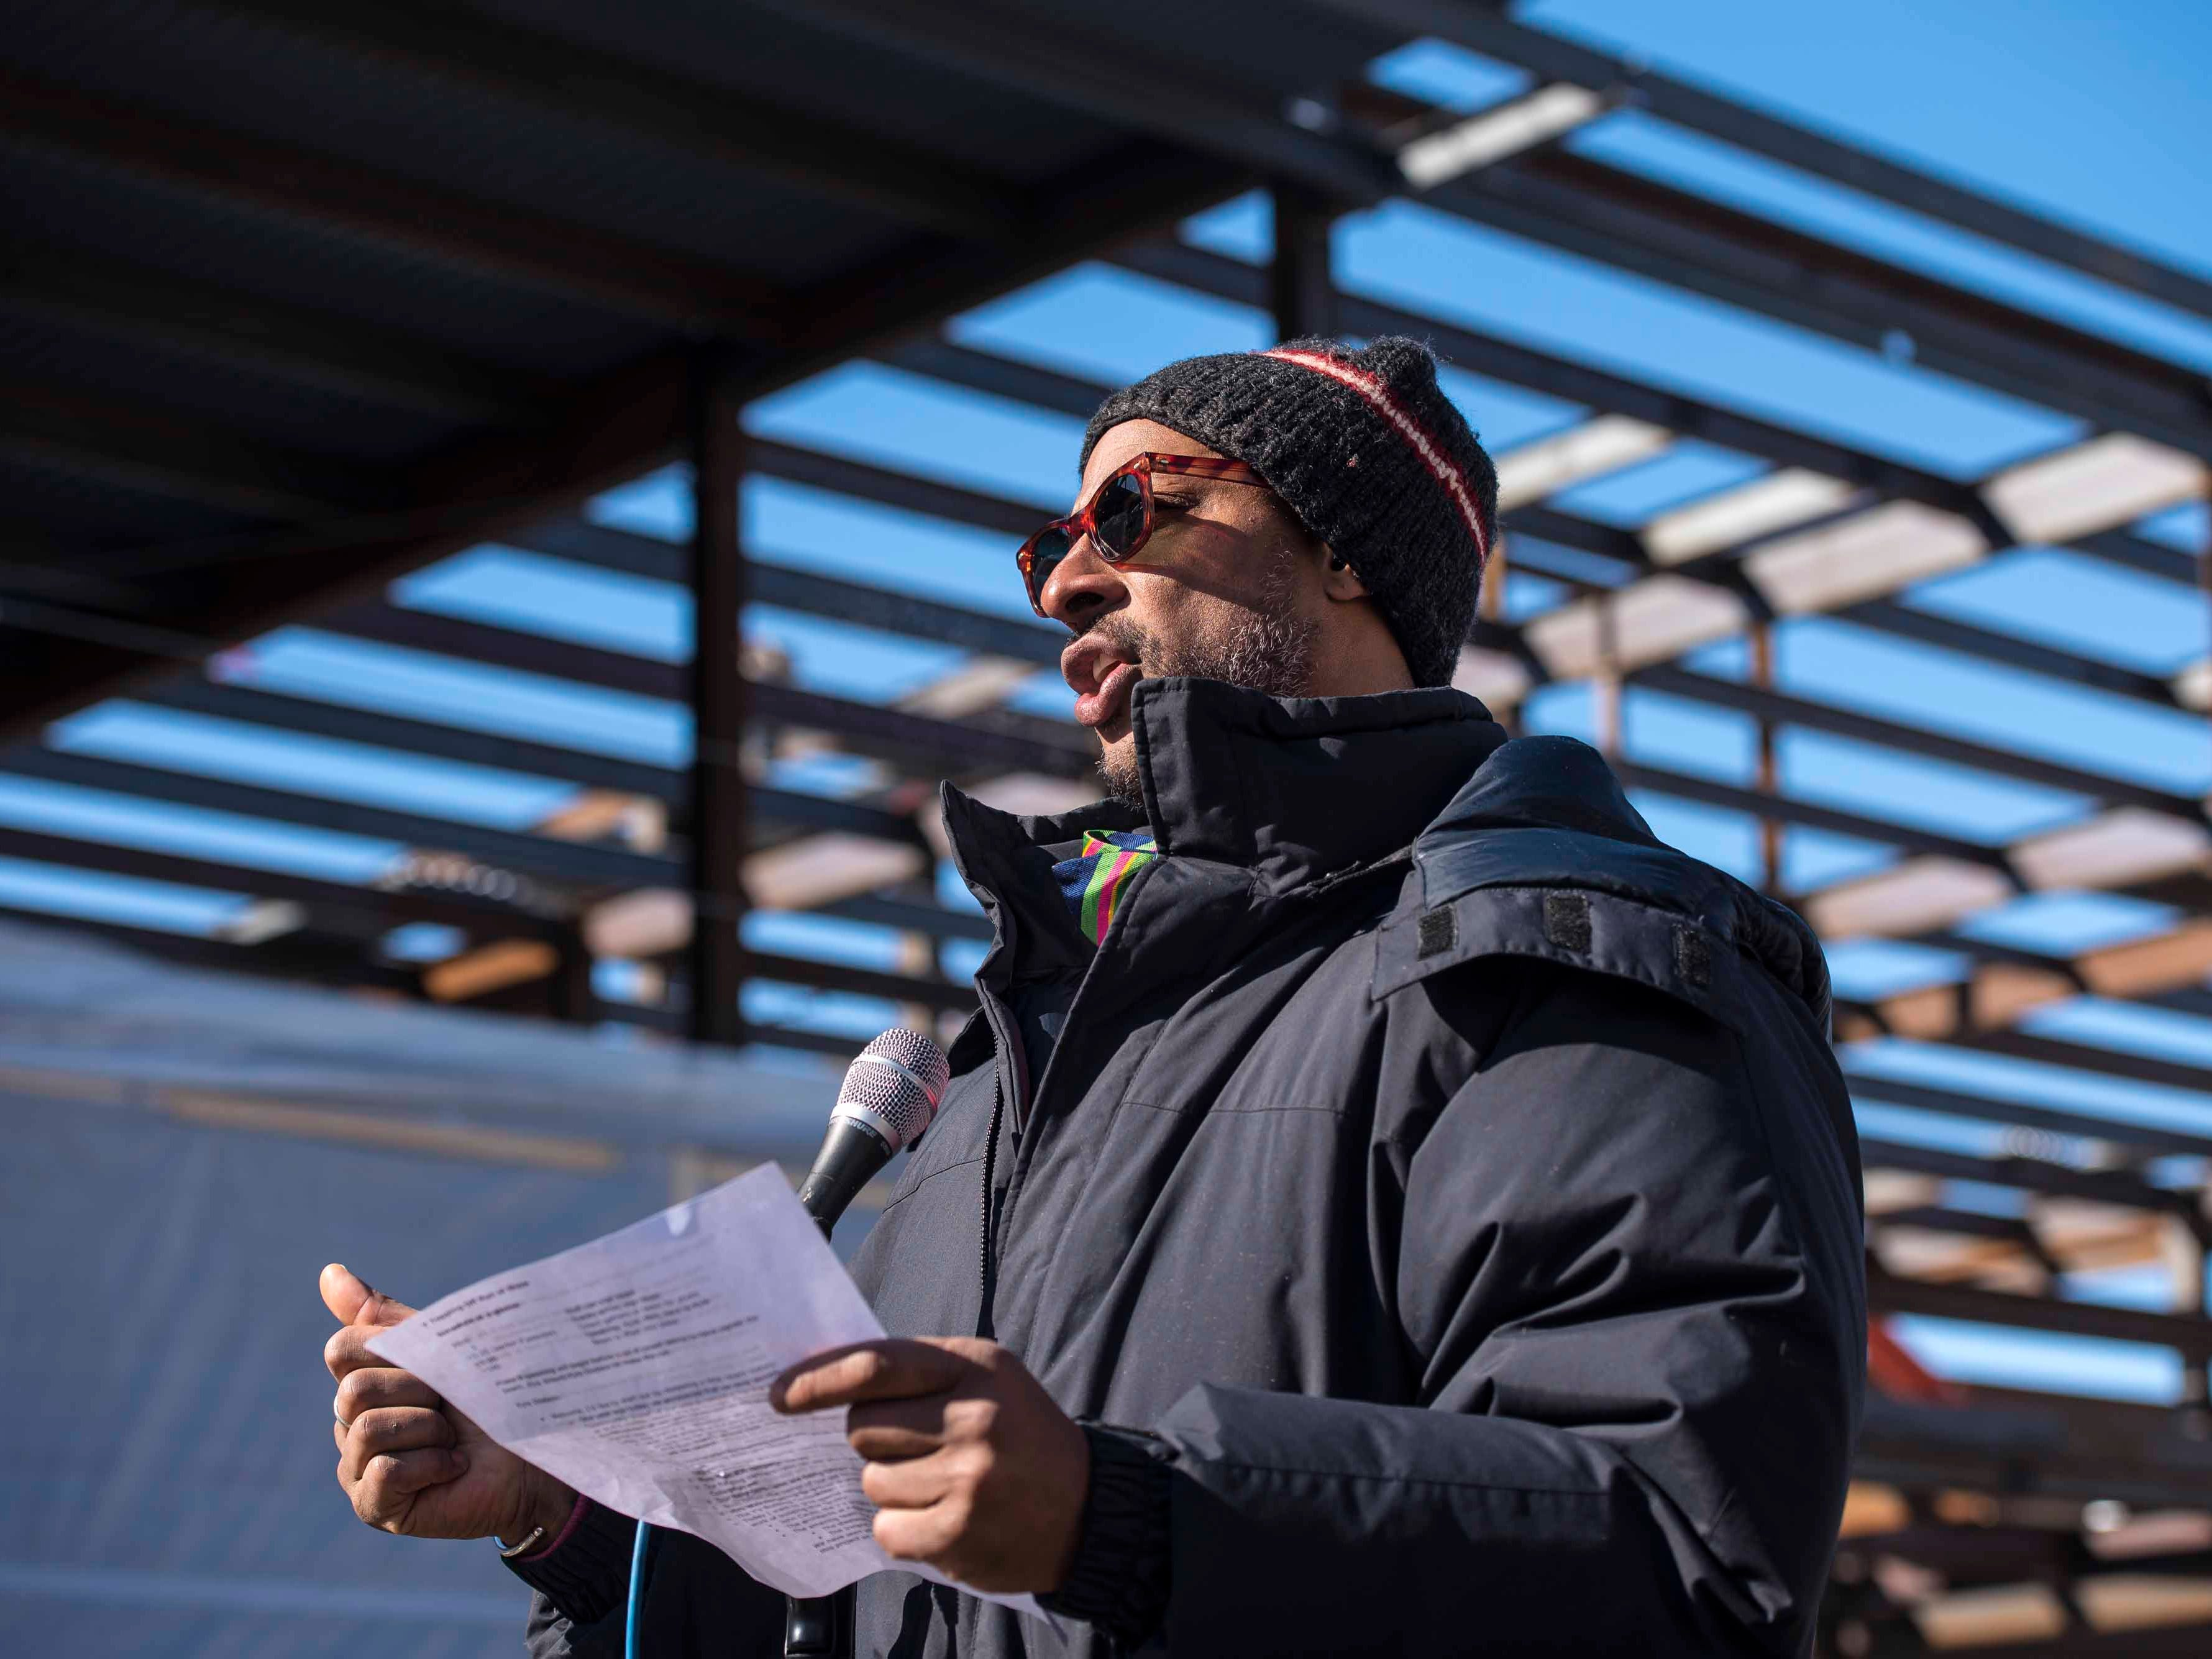 """YMCA CEO and President Kyle Dodson speaks at a """"topping off"""" ceremony for the new Burlington YMCA building in Burlington on Thursday, Feb. 28, 2019."""